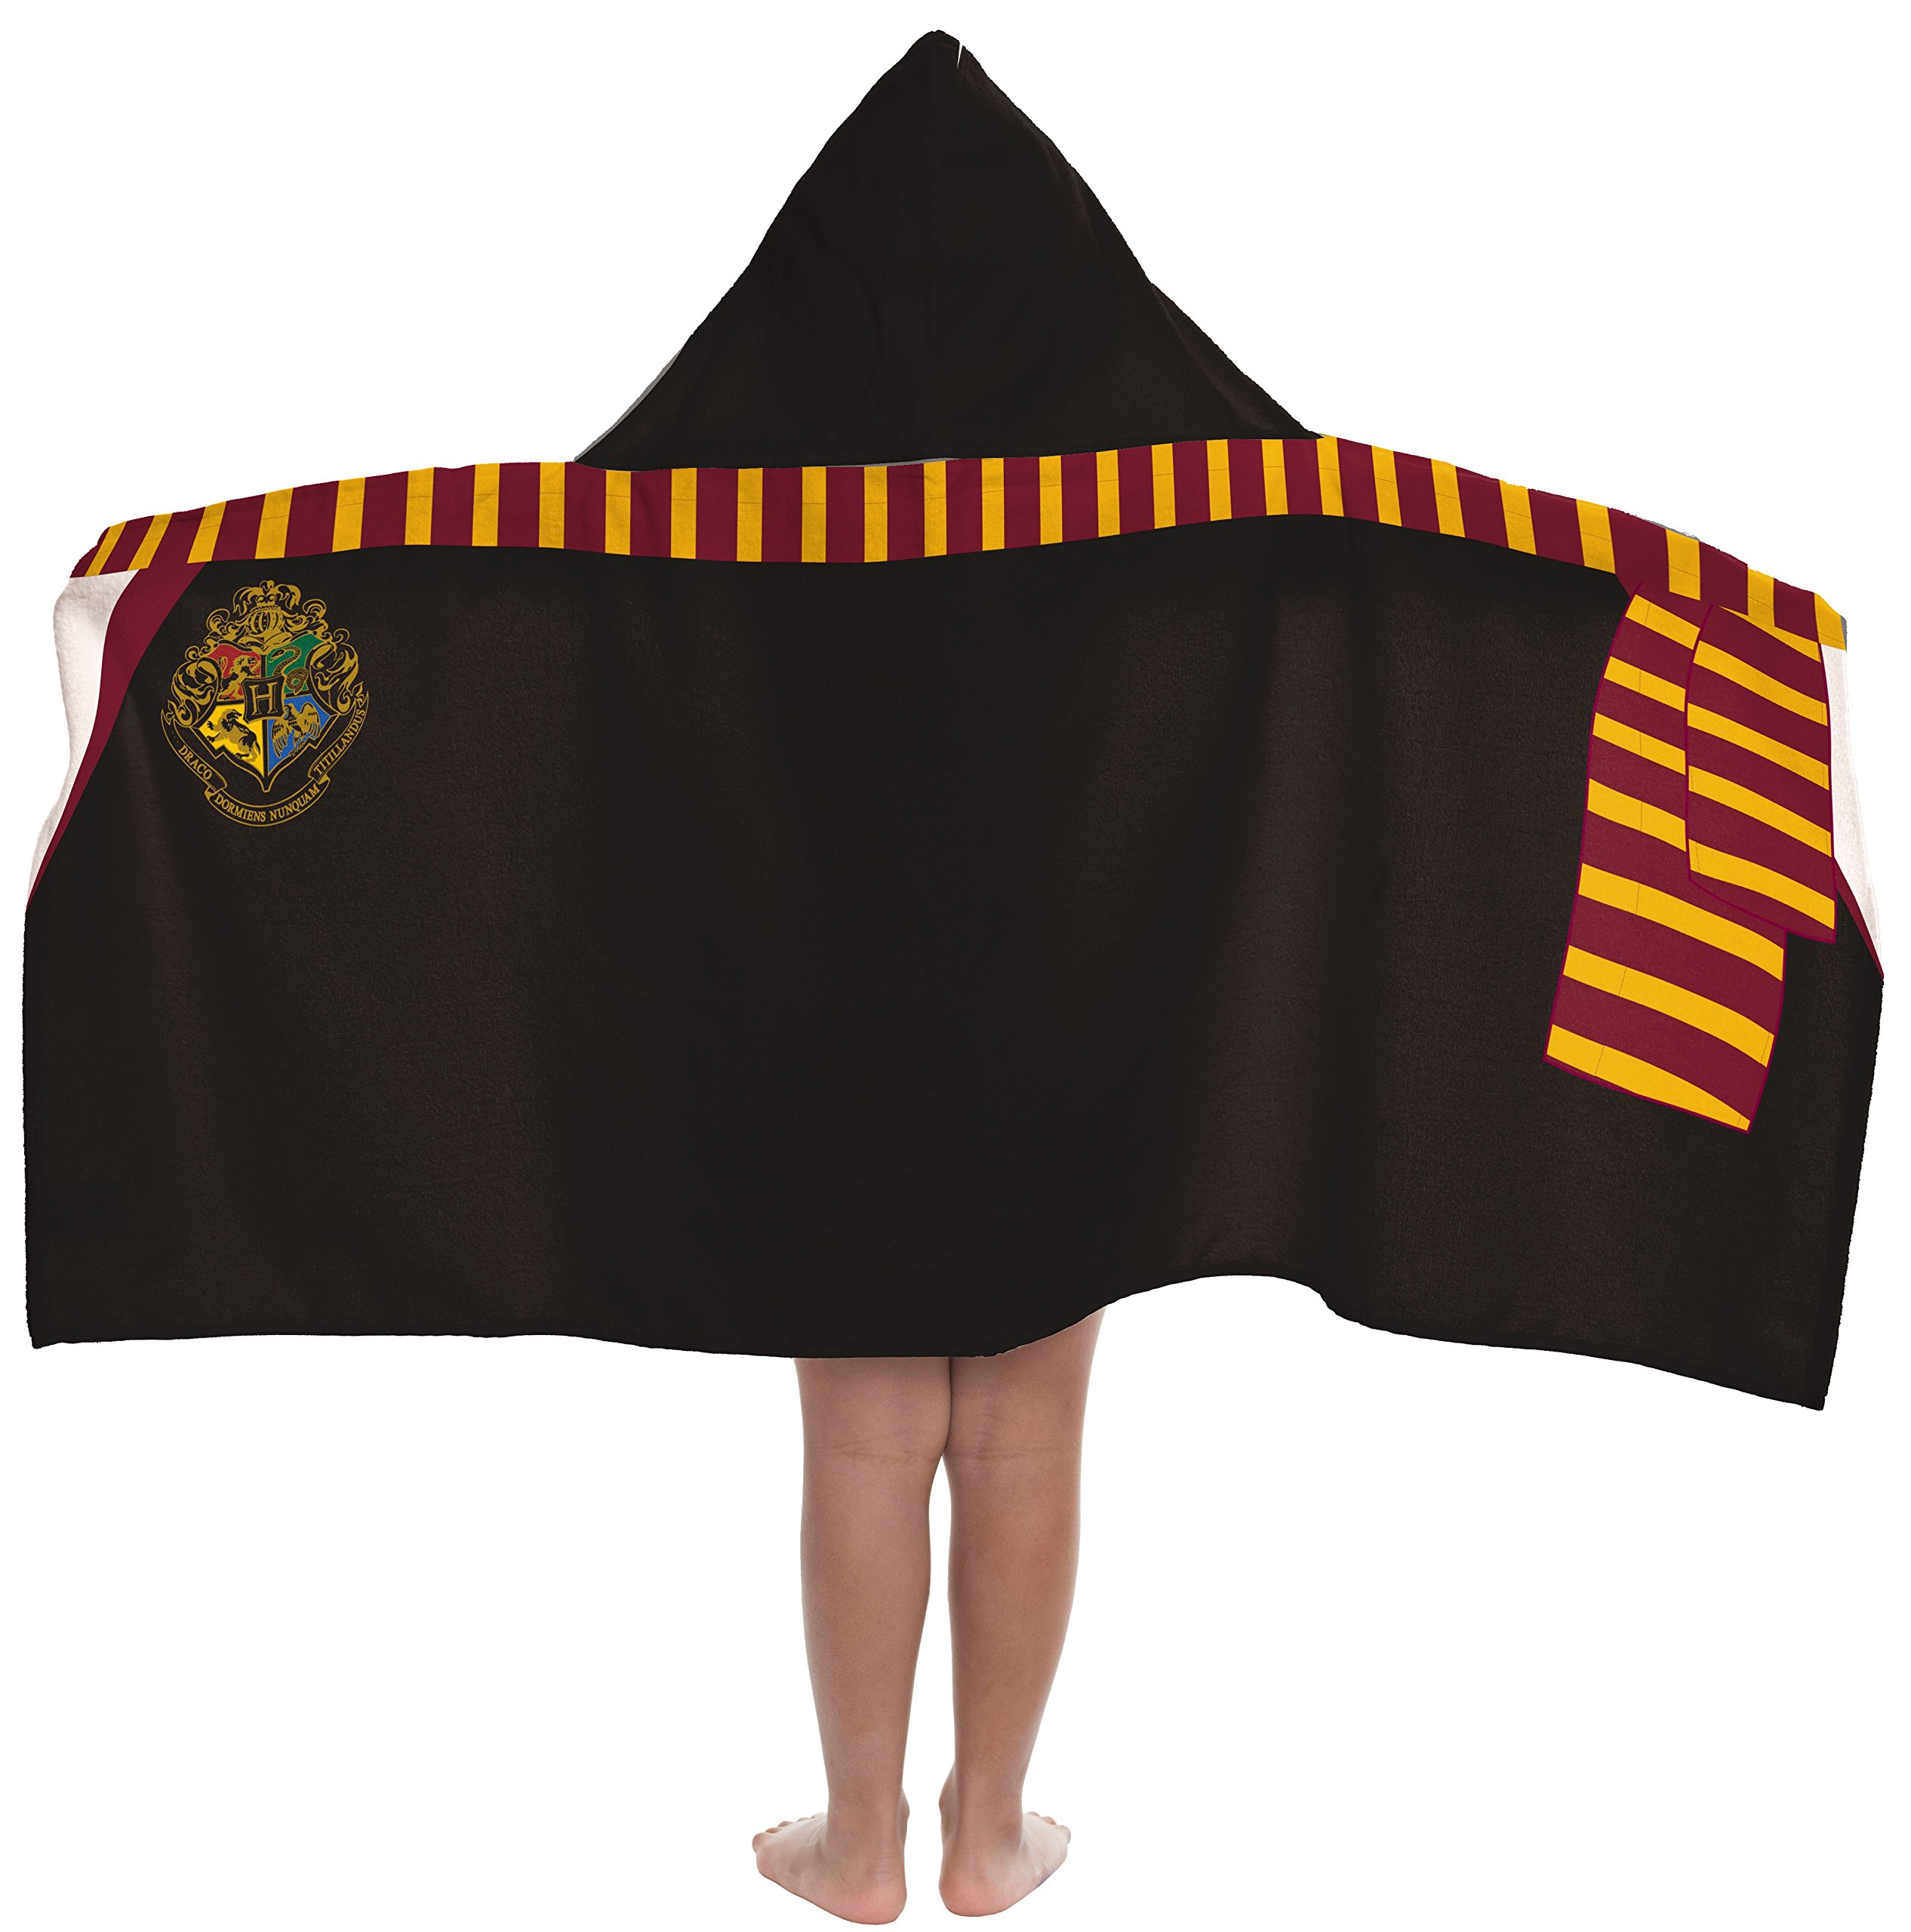 Warner Bros. Harry Potter Soft & Absorbent Kids Hooded Bath/Pool/Beach Towel, Featuring Gryffindor Wizard Cloak - Fade Resistant Cotton Terry Towel, 22.5''Inch x 51''Inch (Official Harry Potter Product)